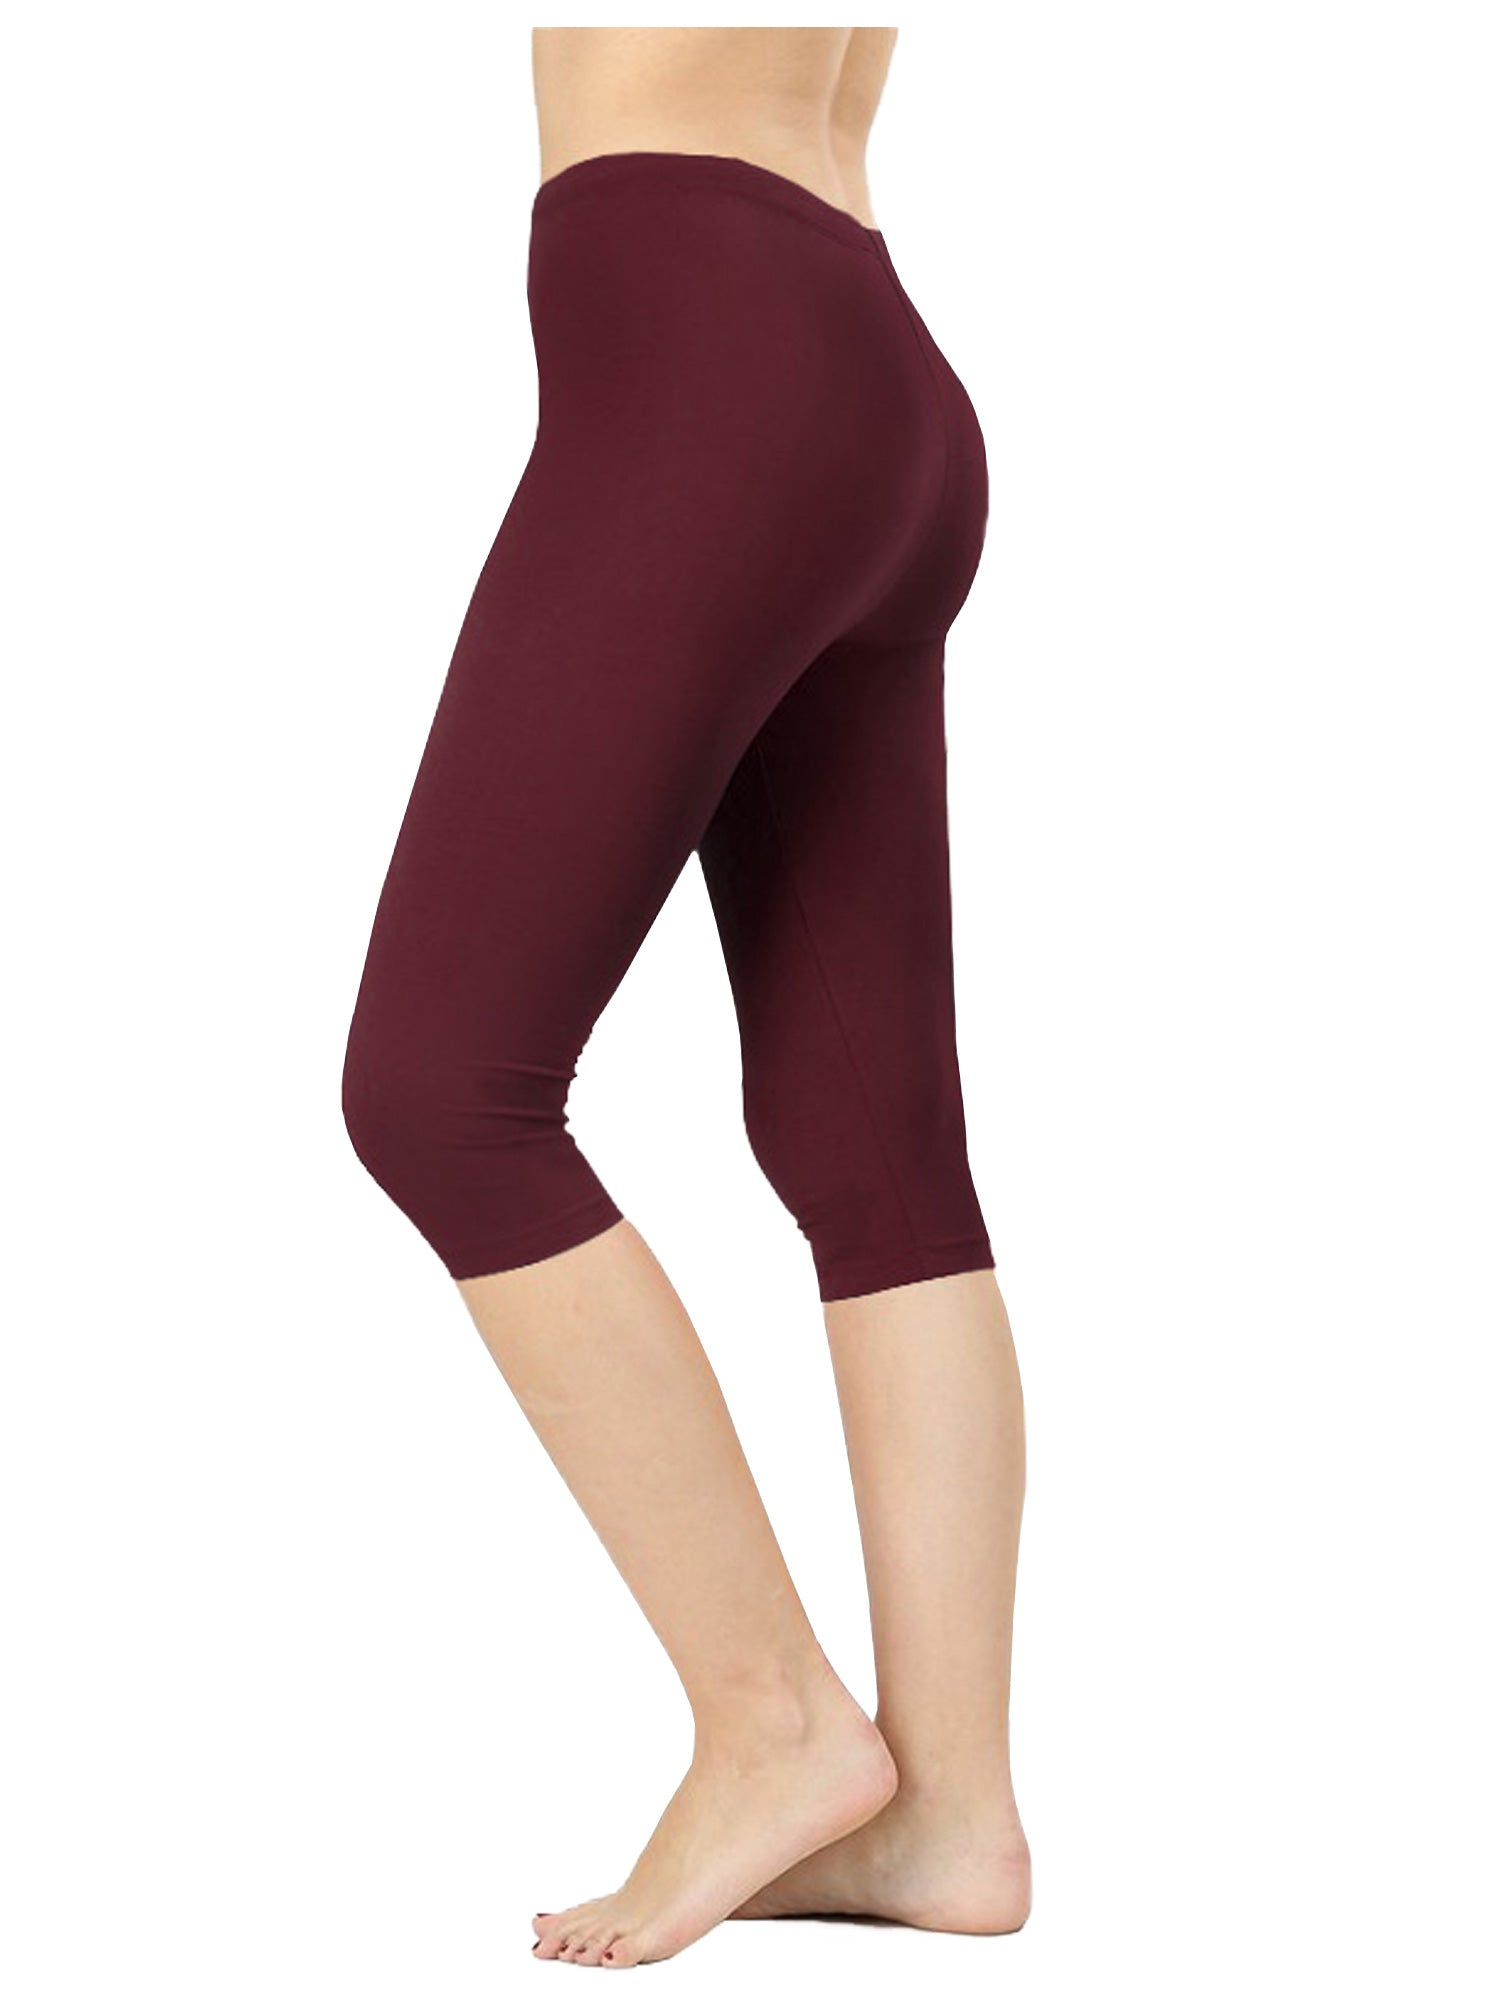 96fee73edf4262 ... Womens Premium Cotton Comfortable Stretch Capri Leggings 15in Inseam (3- Pack) ...